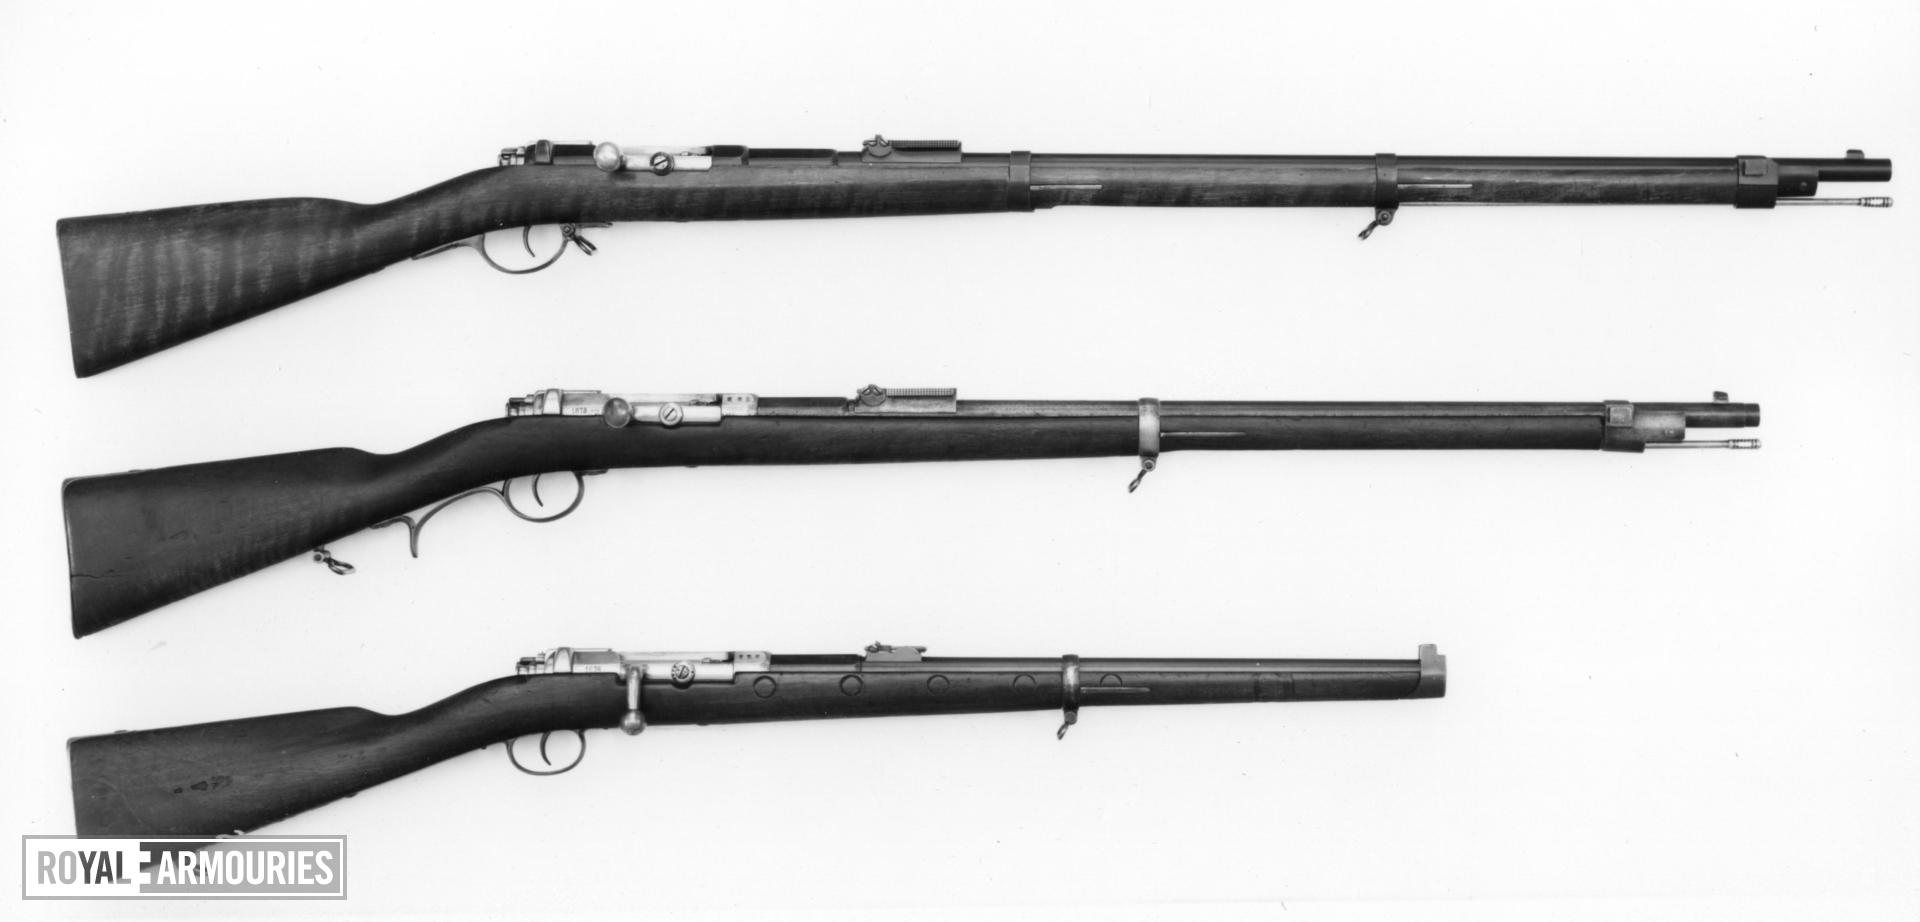 Centrefire bolt-action military rifle - Mauser Model 1871